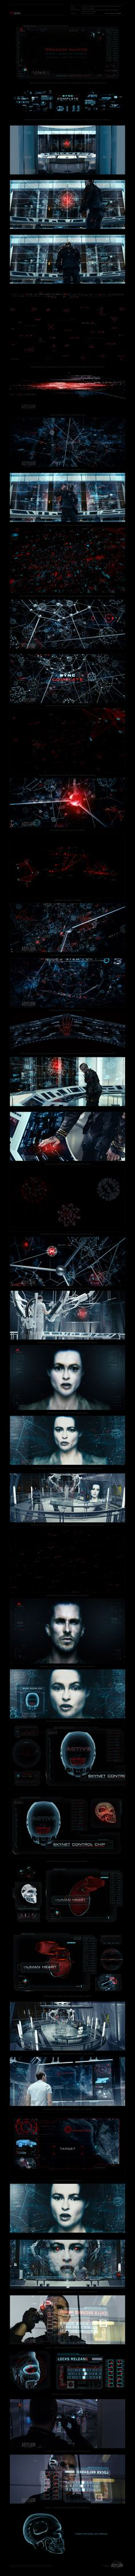 #Terminator Salvation. #UI I loved this part, what a crazy ending to a weird and crazy movie.